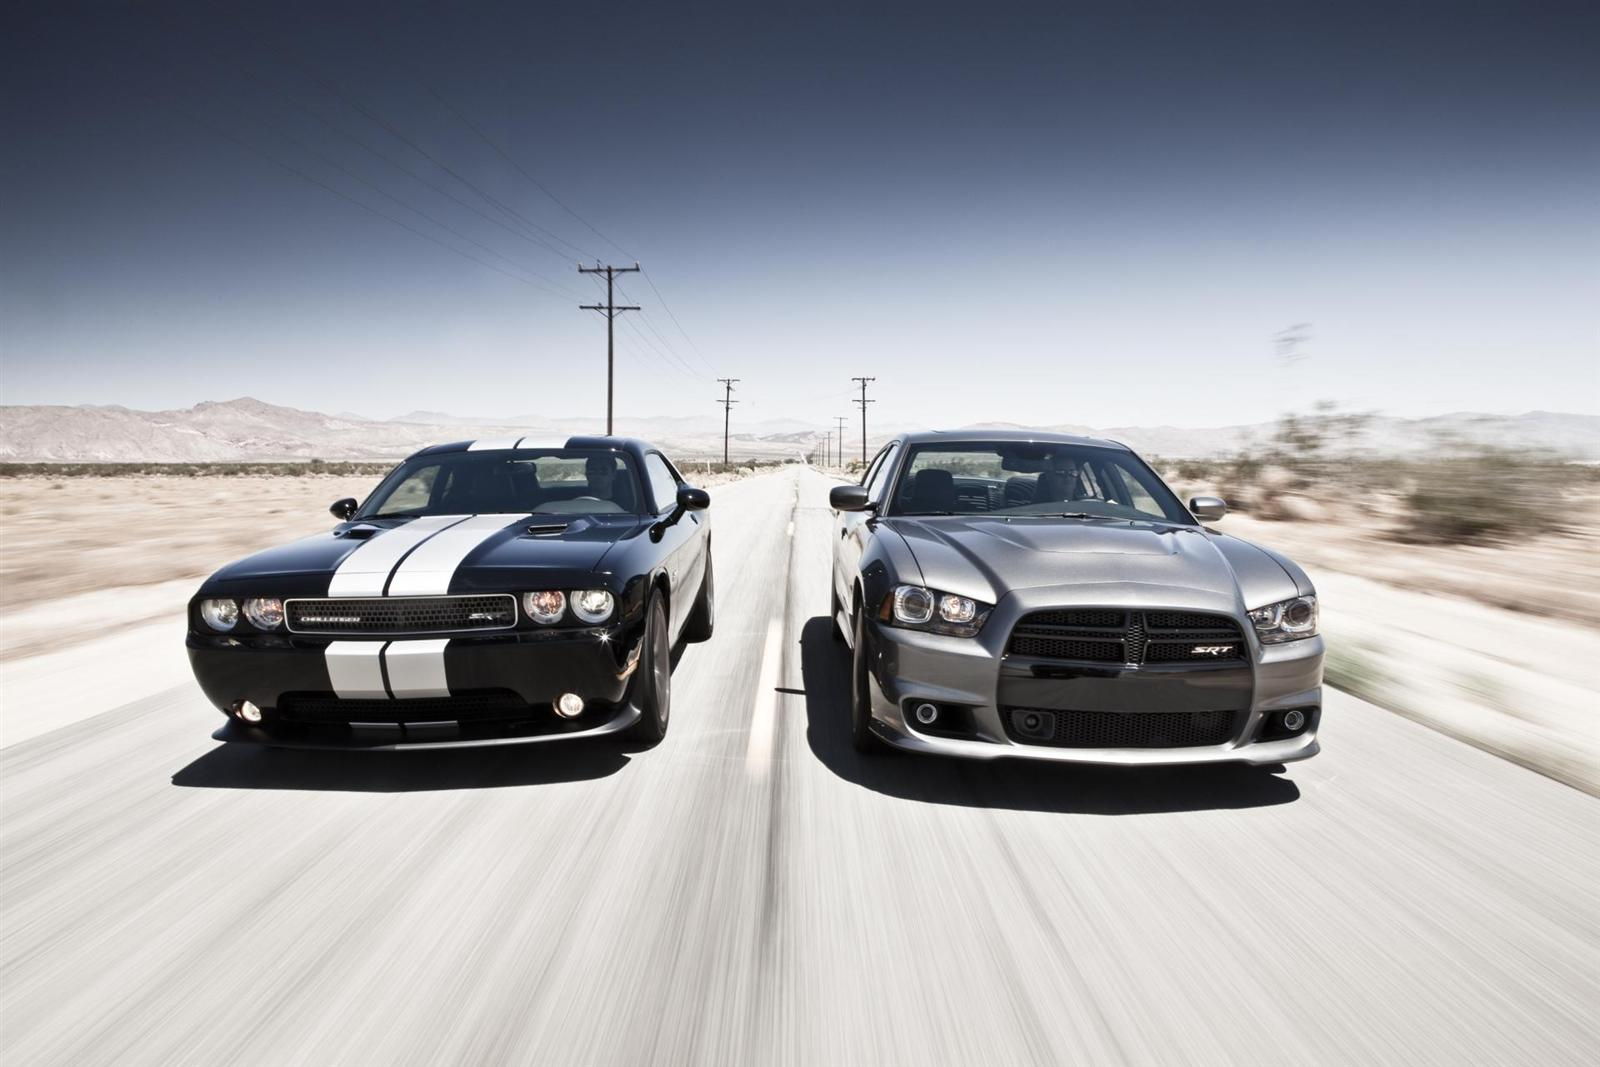 dodge charger car wallpaper-for desktop |